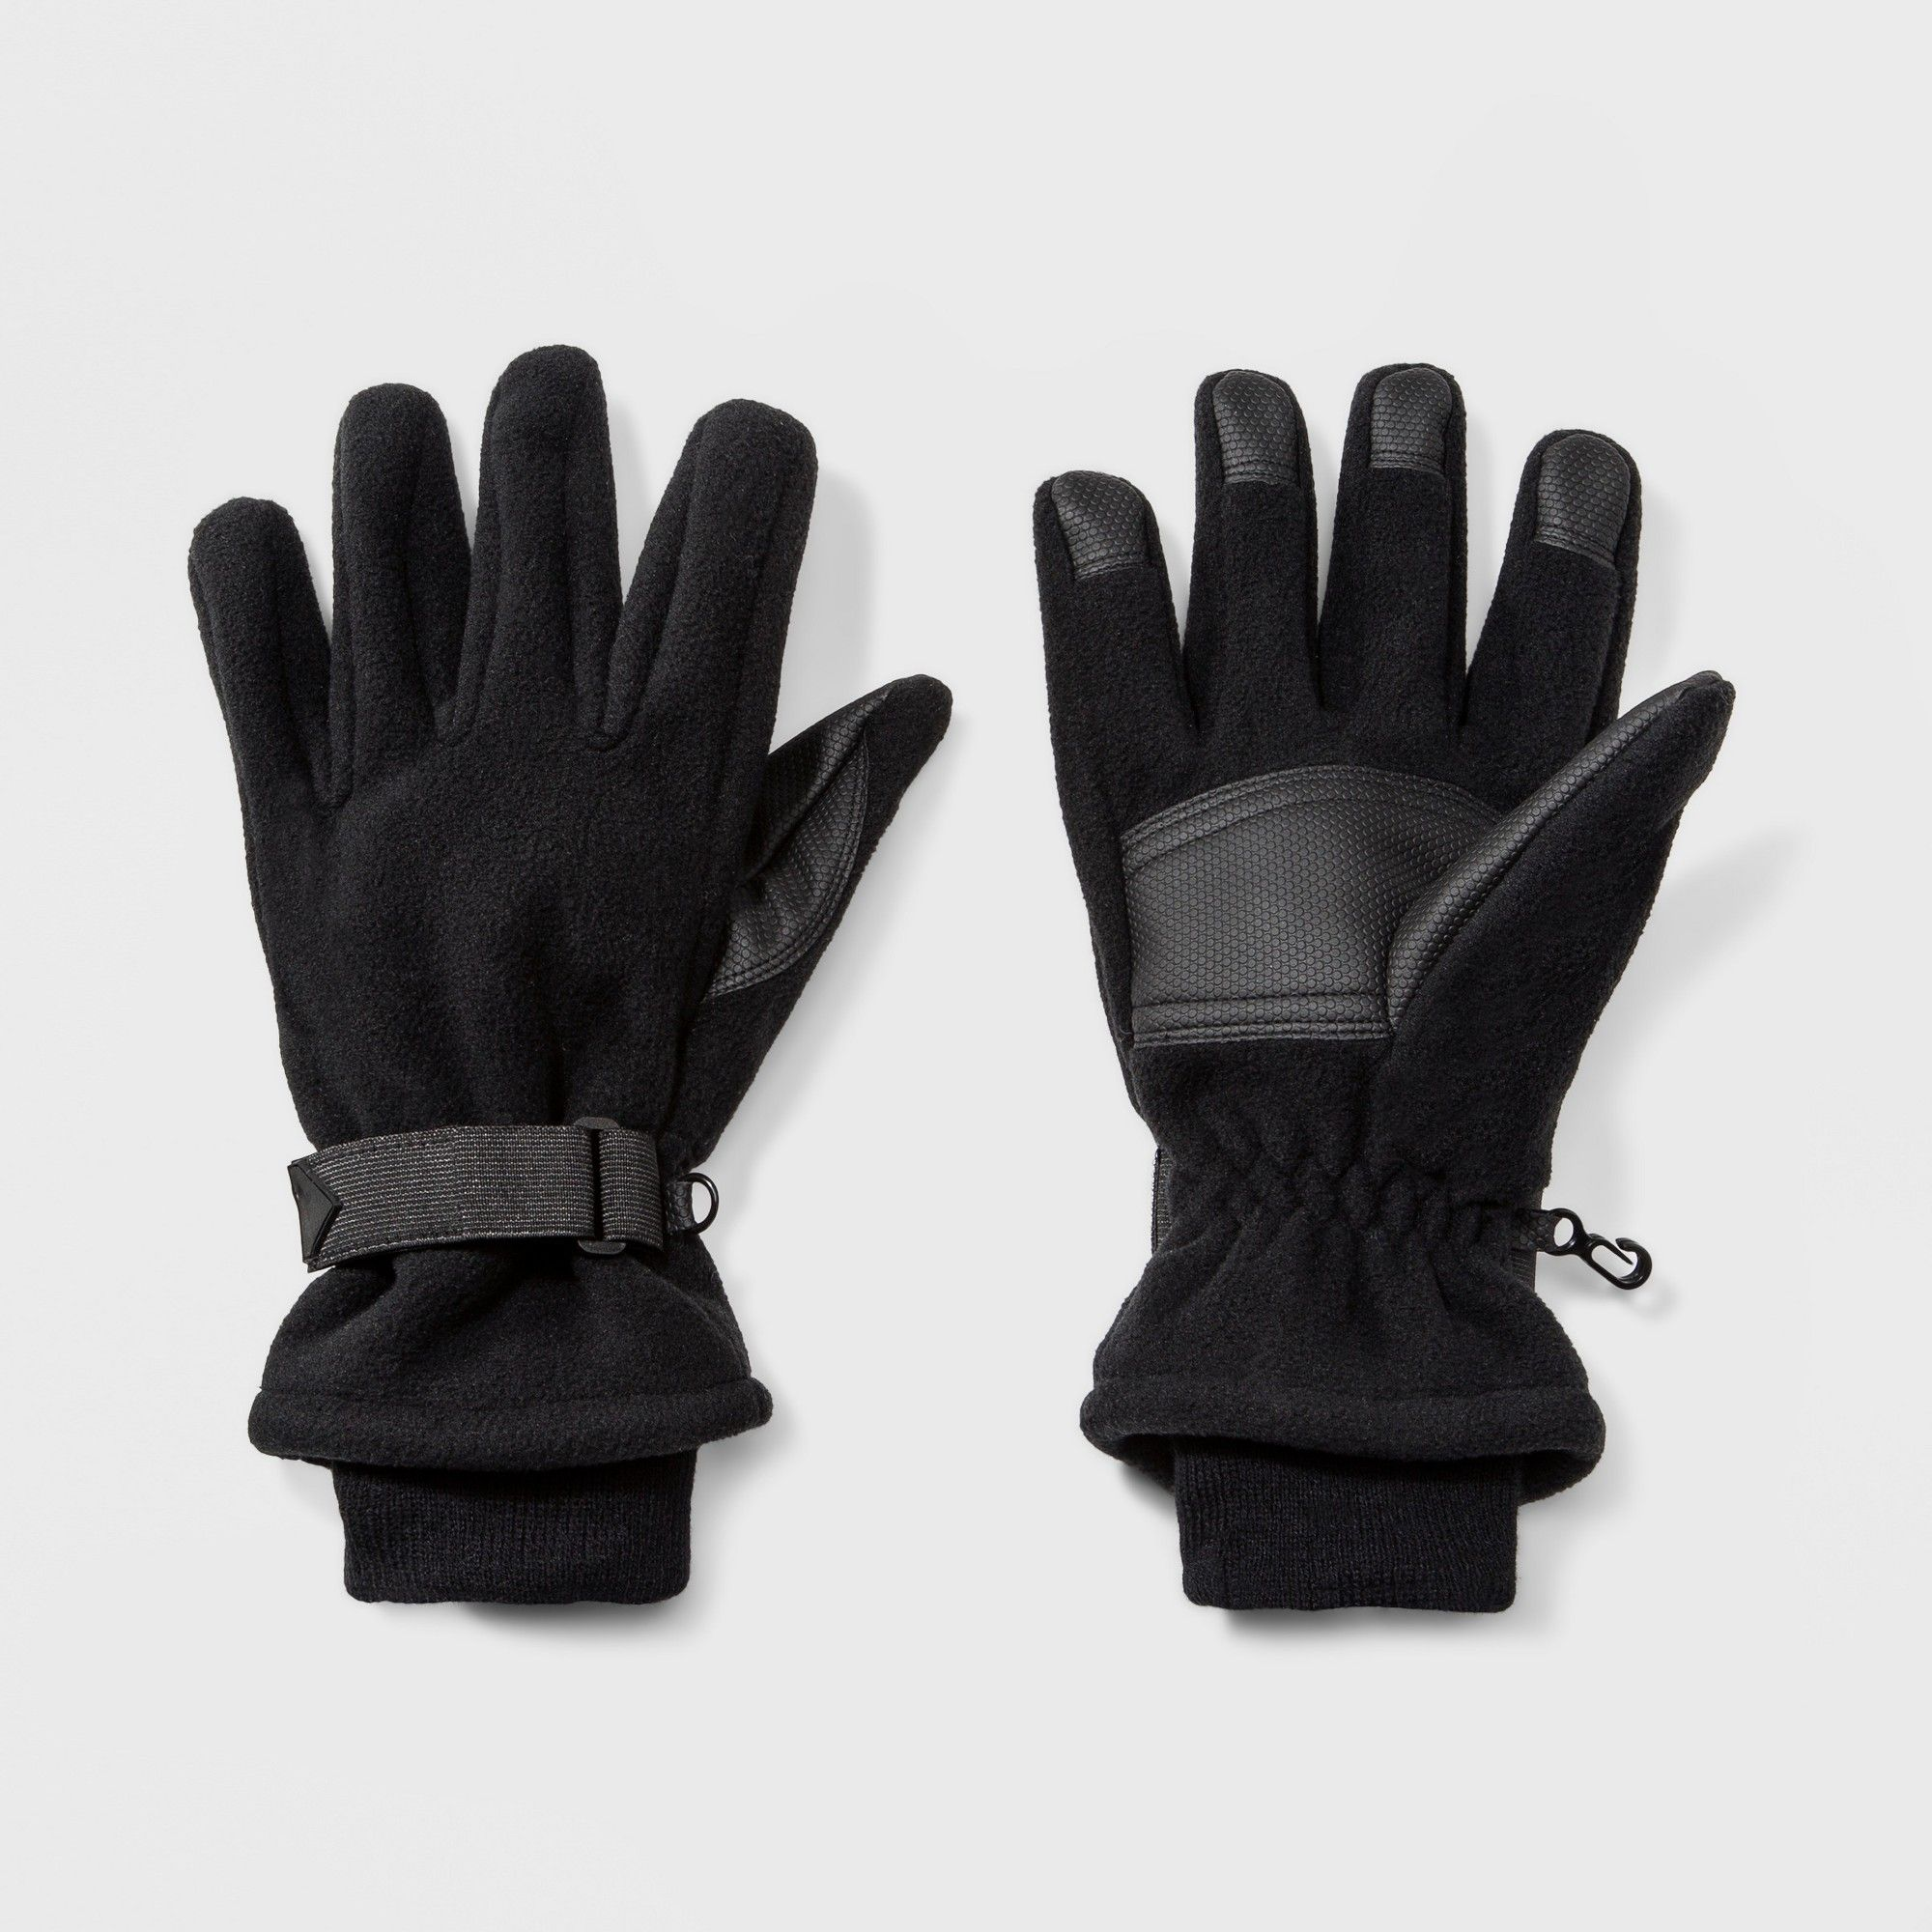 30114f7b5 Men's Wind Proof Fleece Glove With Knit Cuff Gloves - Goodfellow & Co Black  XL